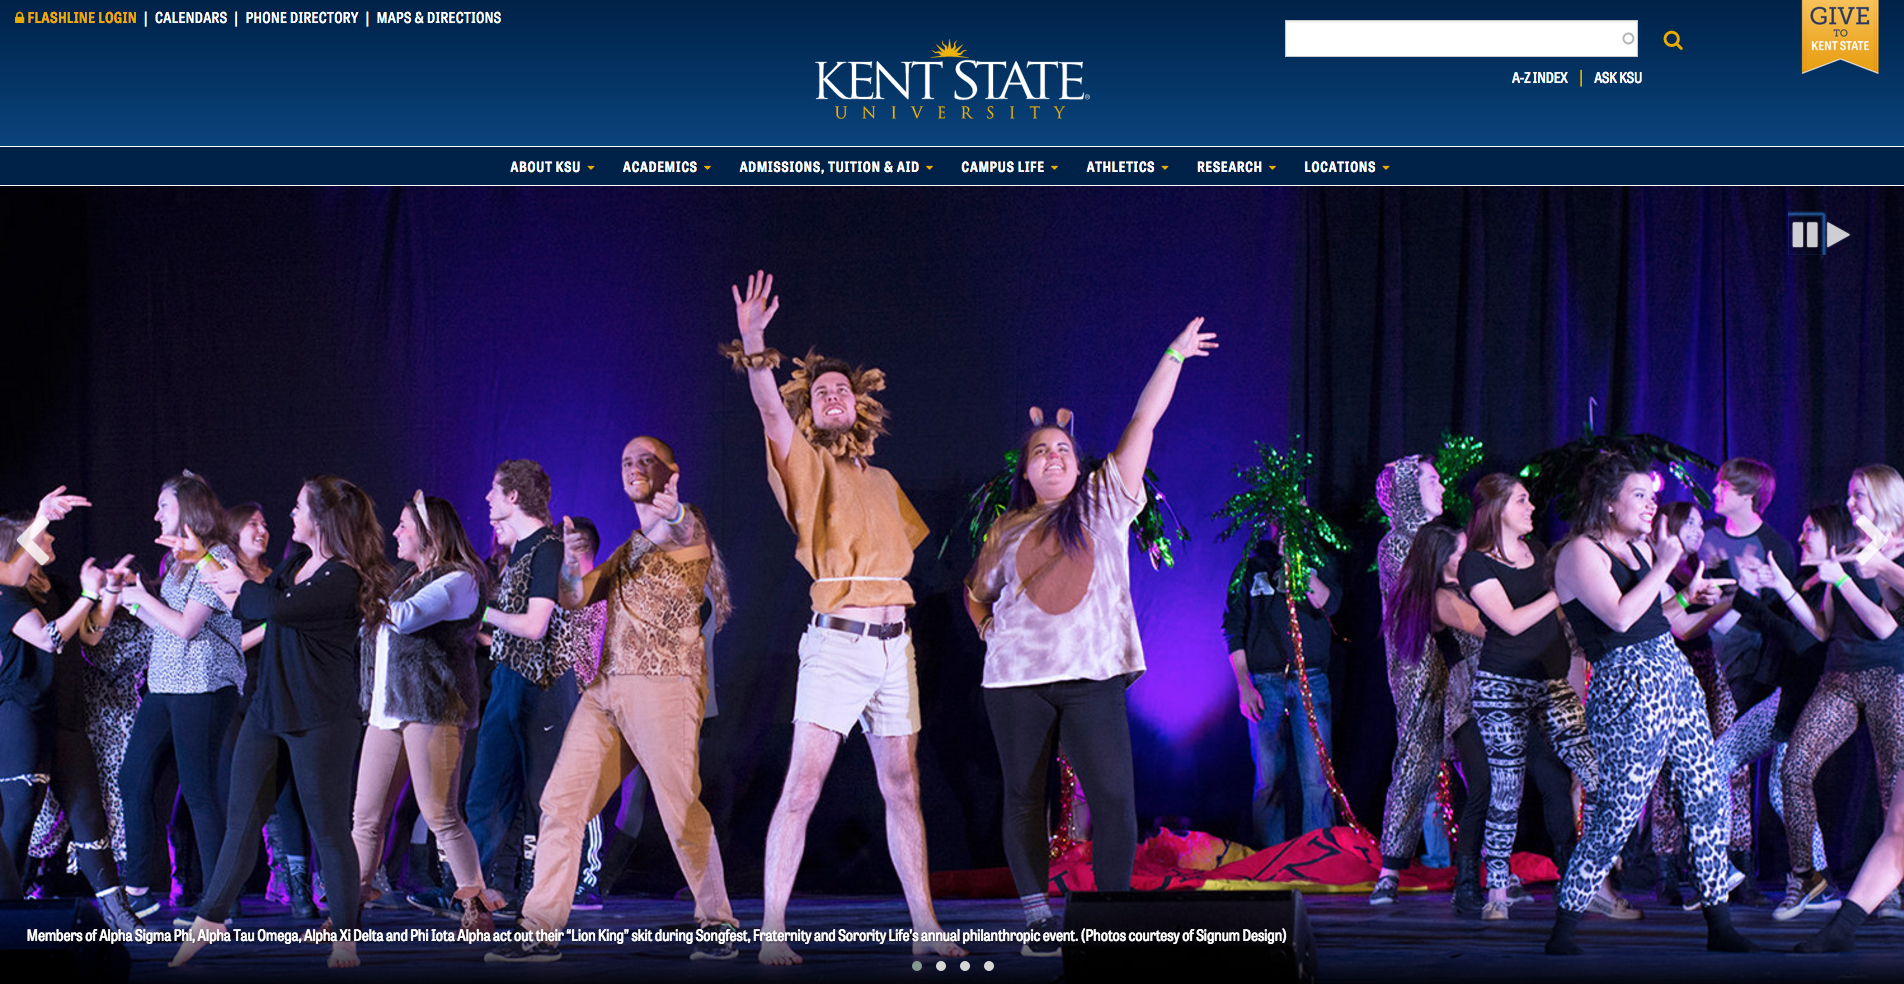 From the Kent State University home webpage.        __________________________________________________________